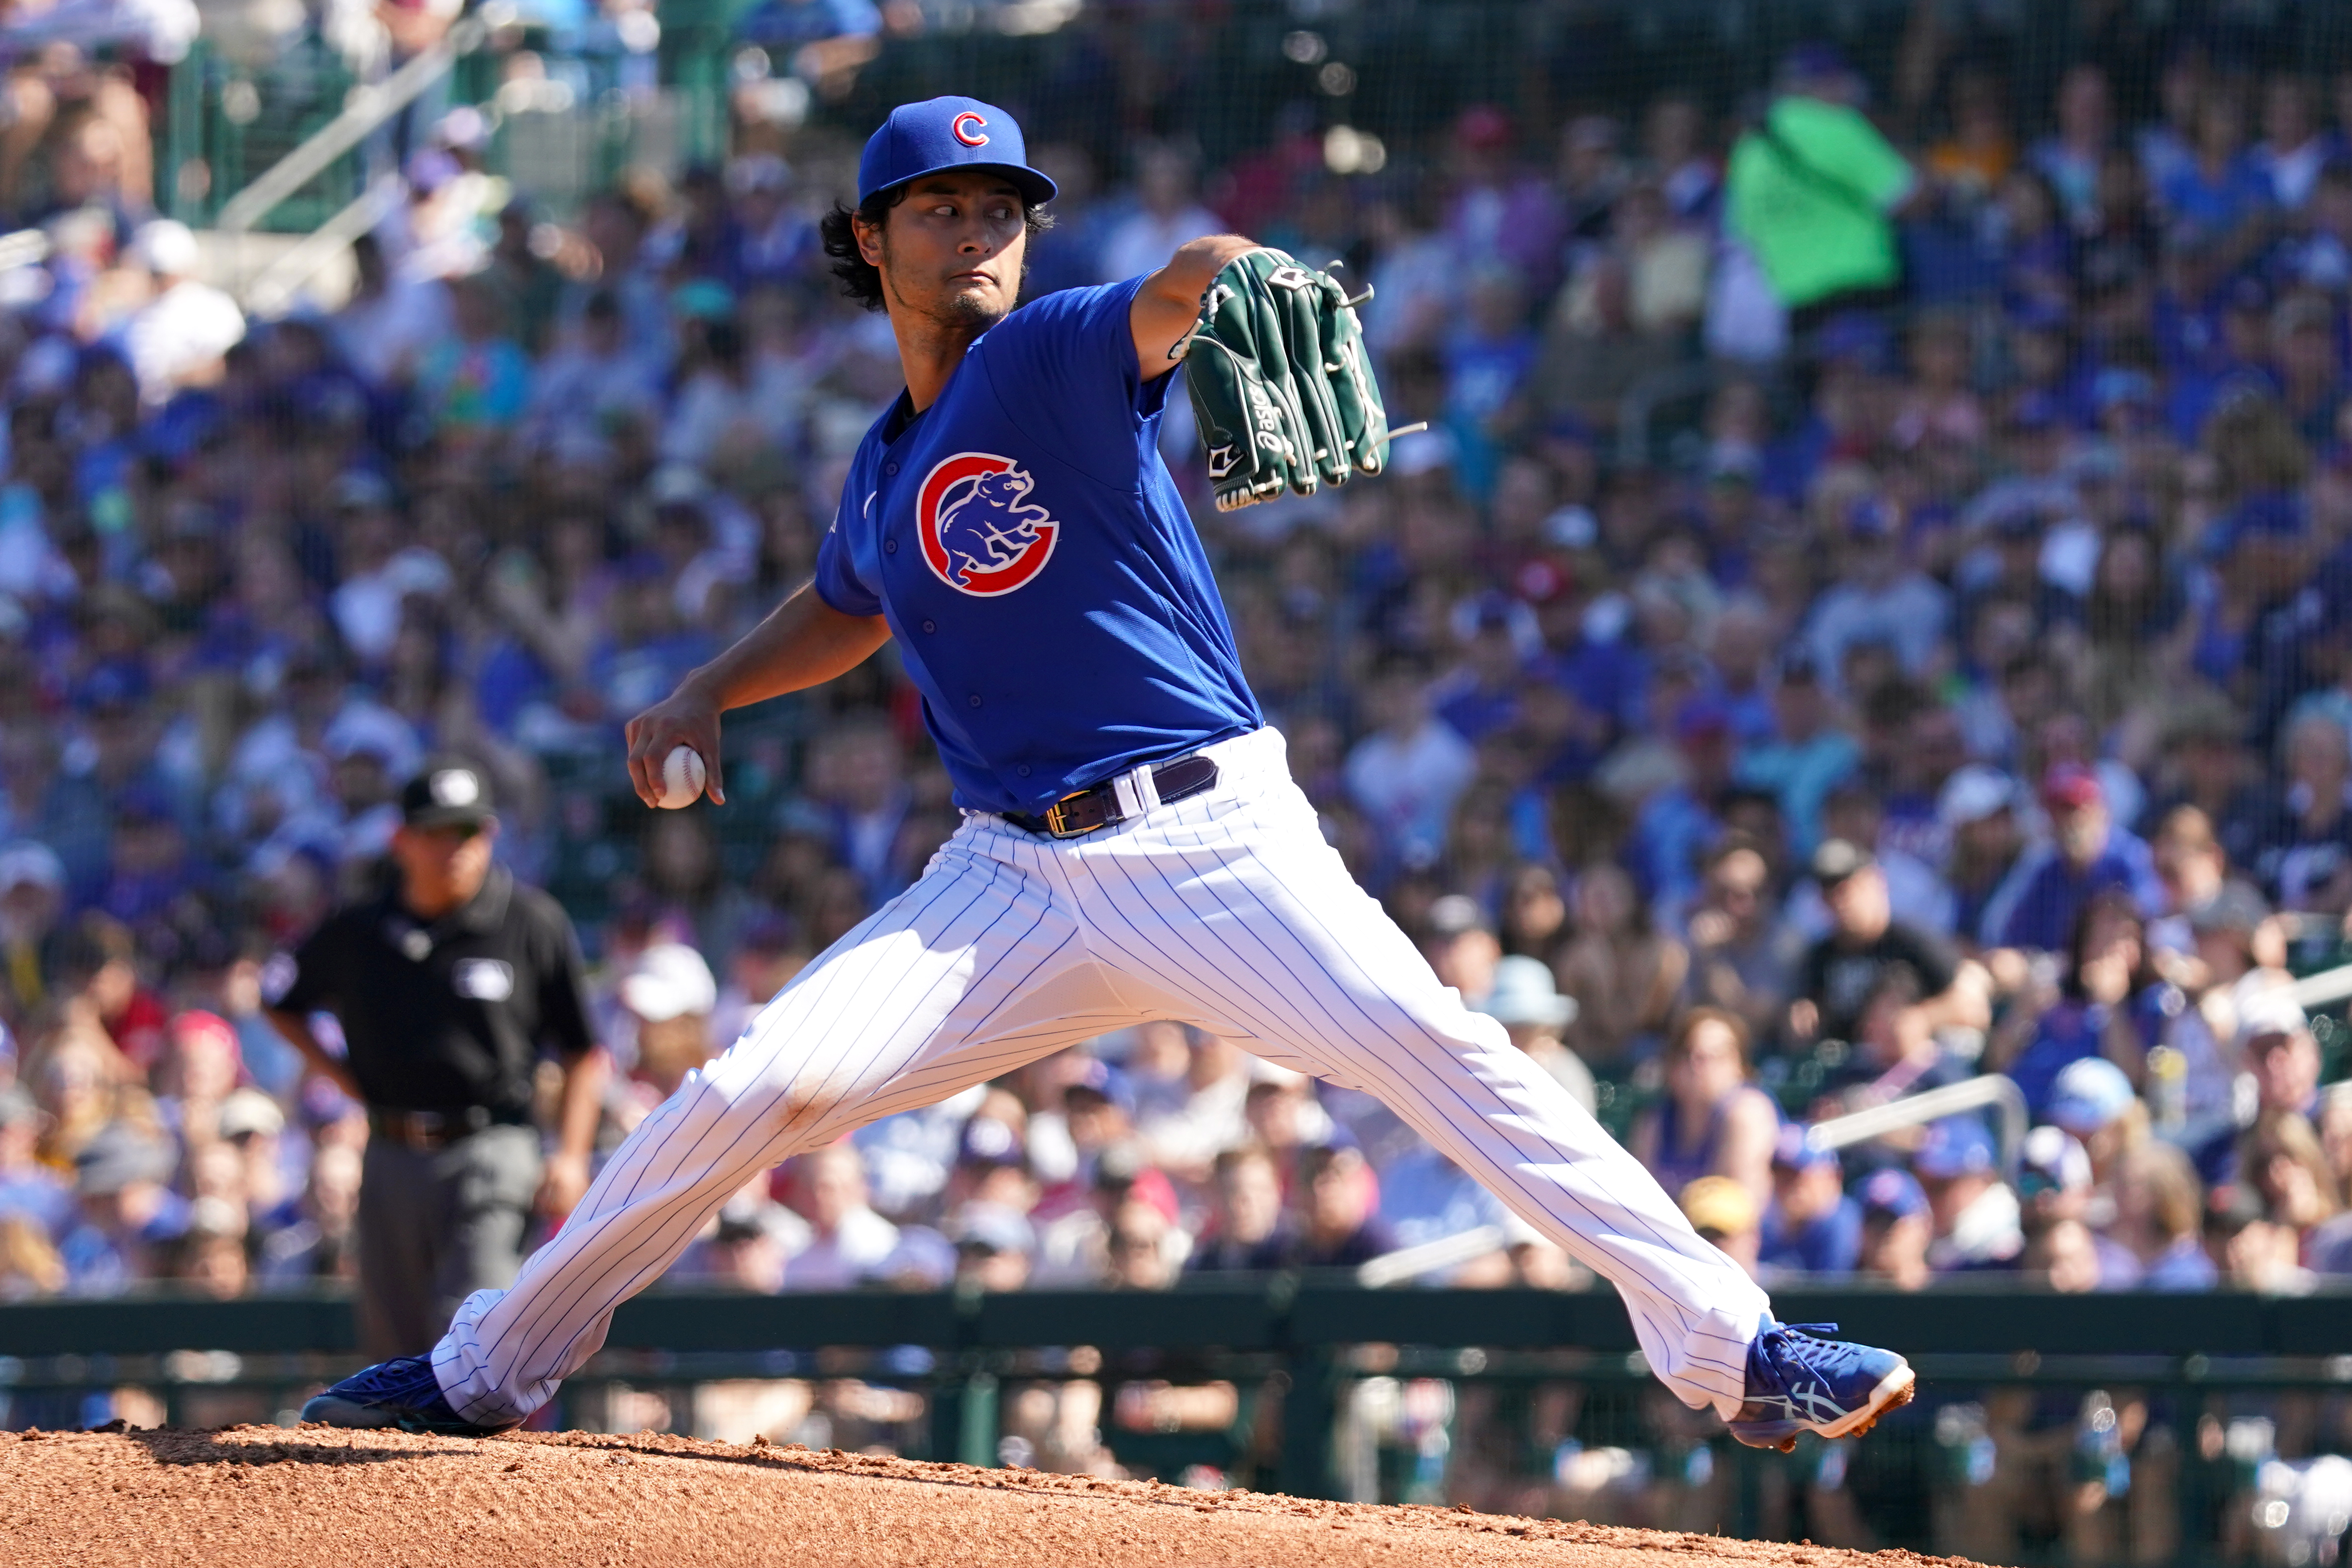 Yu Darvish of the Chicago Cubs pitches during a spring training game against the Milwaukee Brewers on February 29, 2020 in Mesa, Arizona.